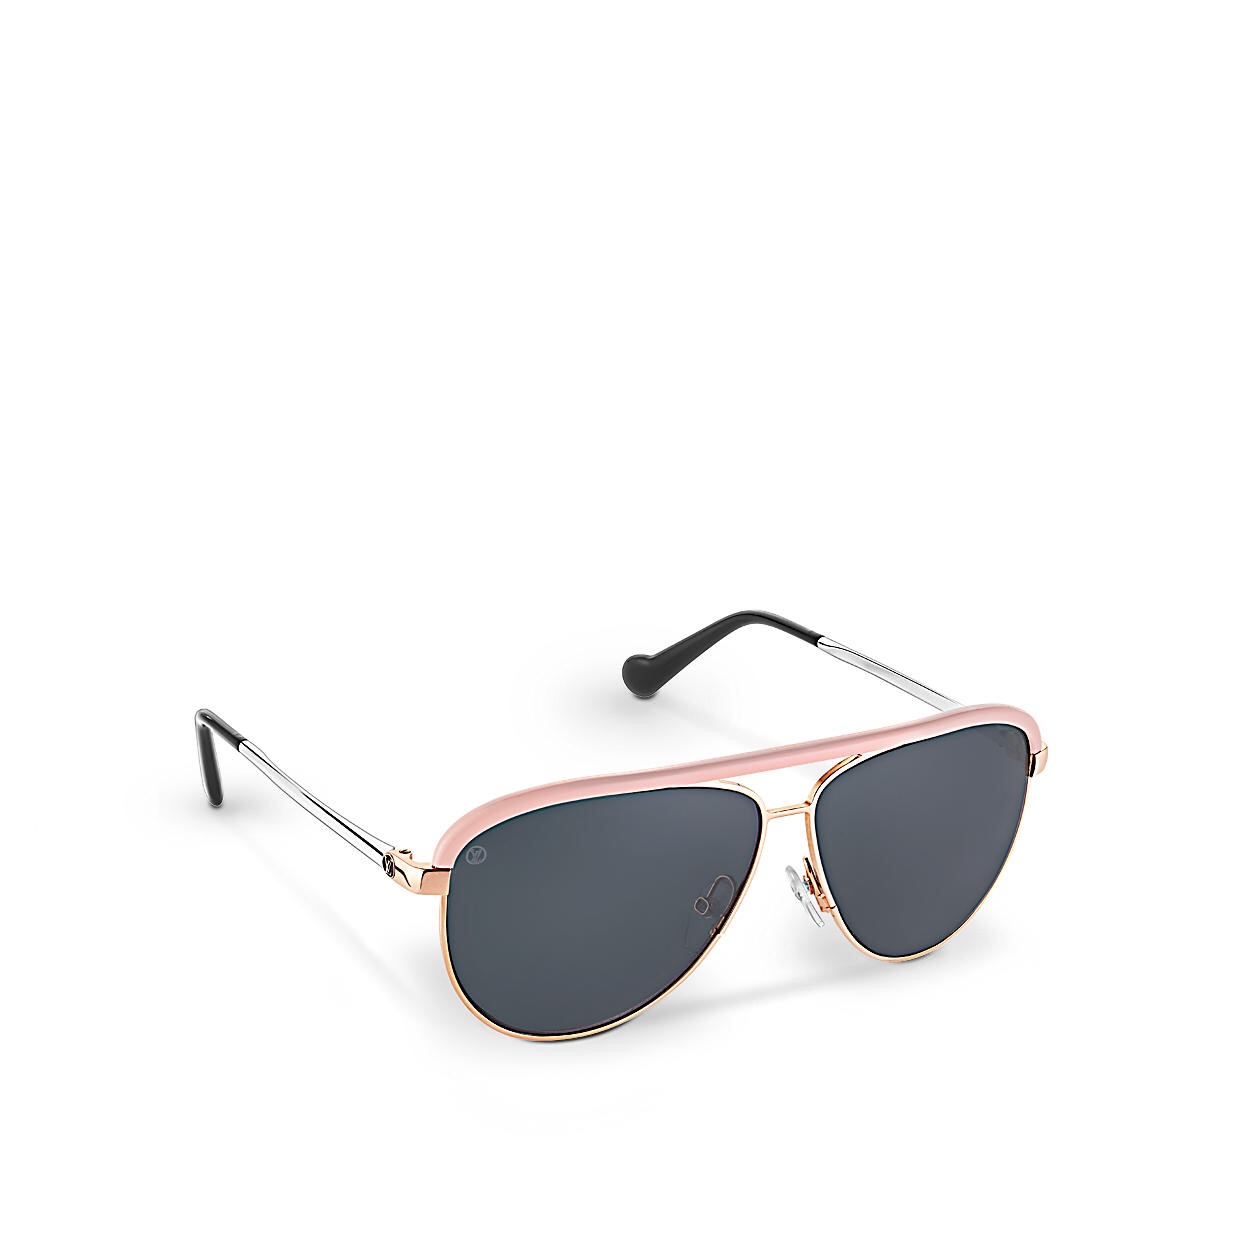 louis vuitton sunglasses. louis vuitton jet set sunglasses